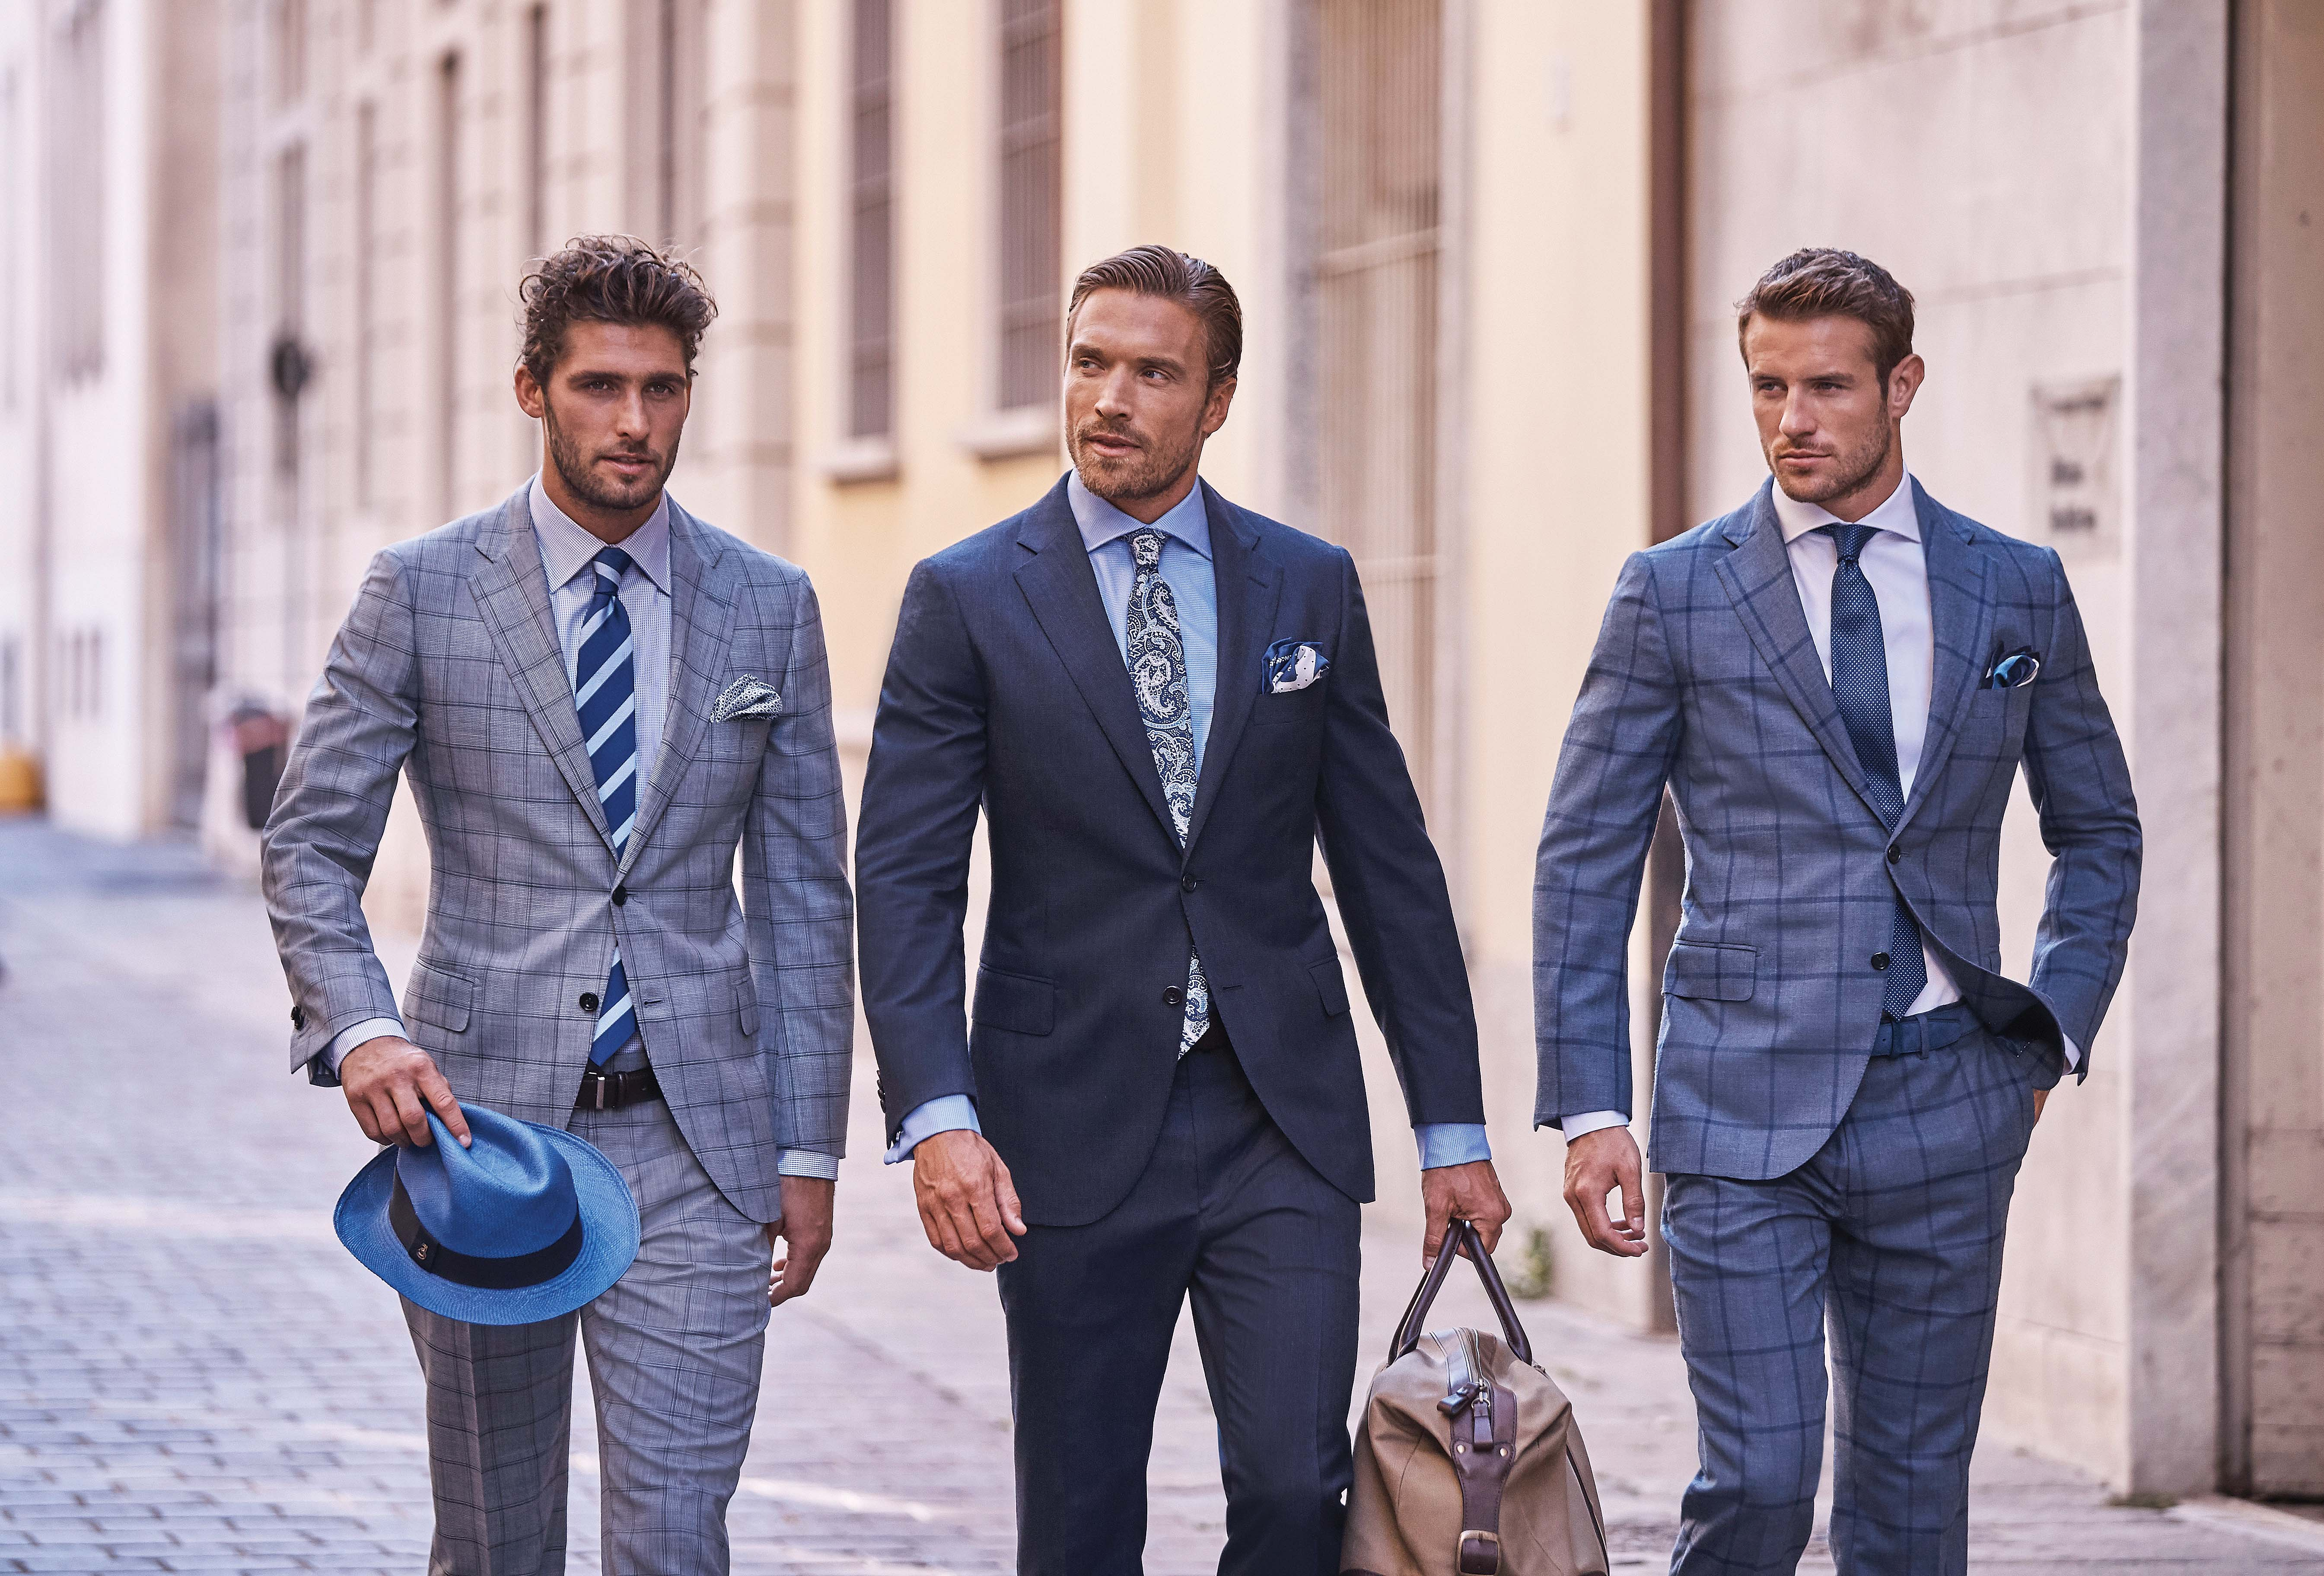 Suits, Sport Coats and Pants